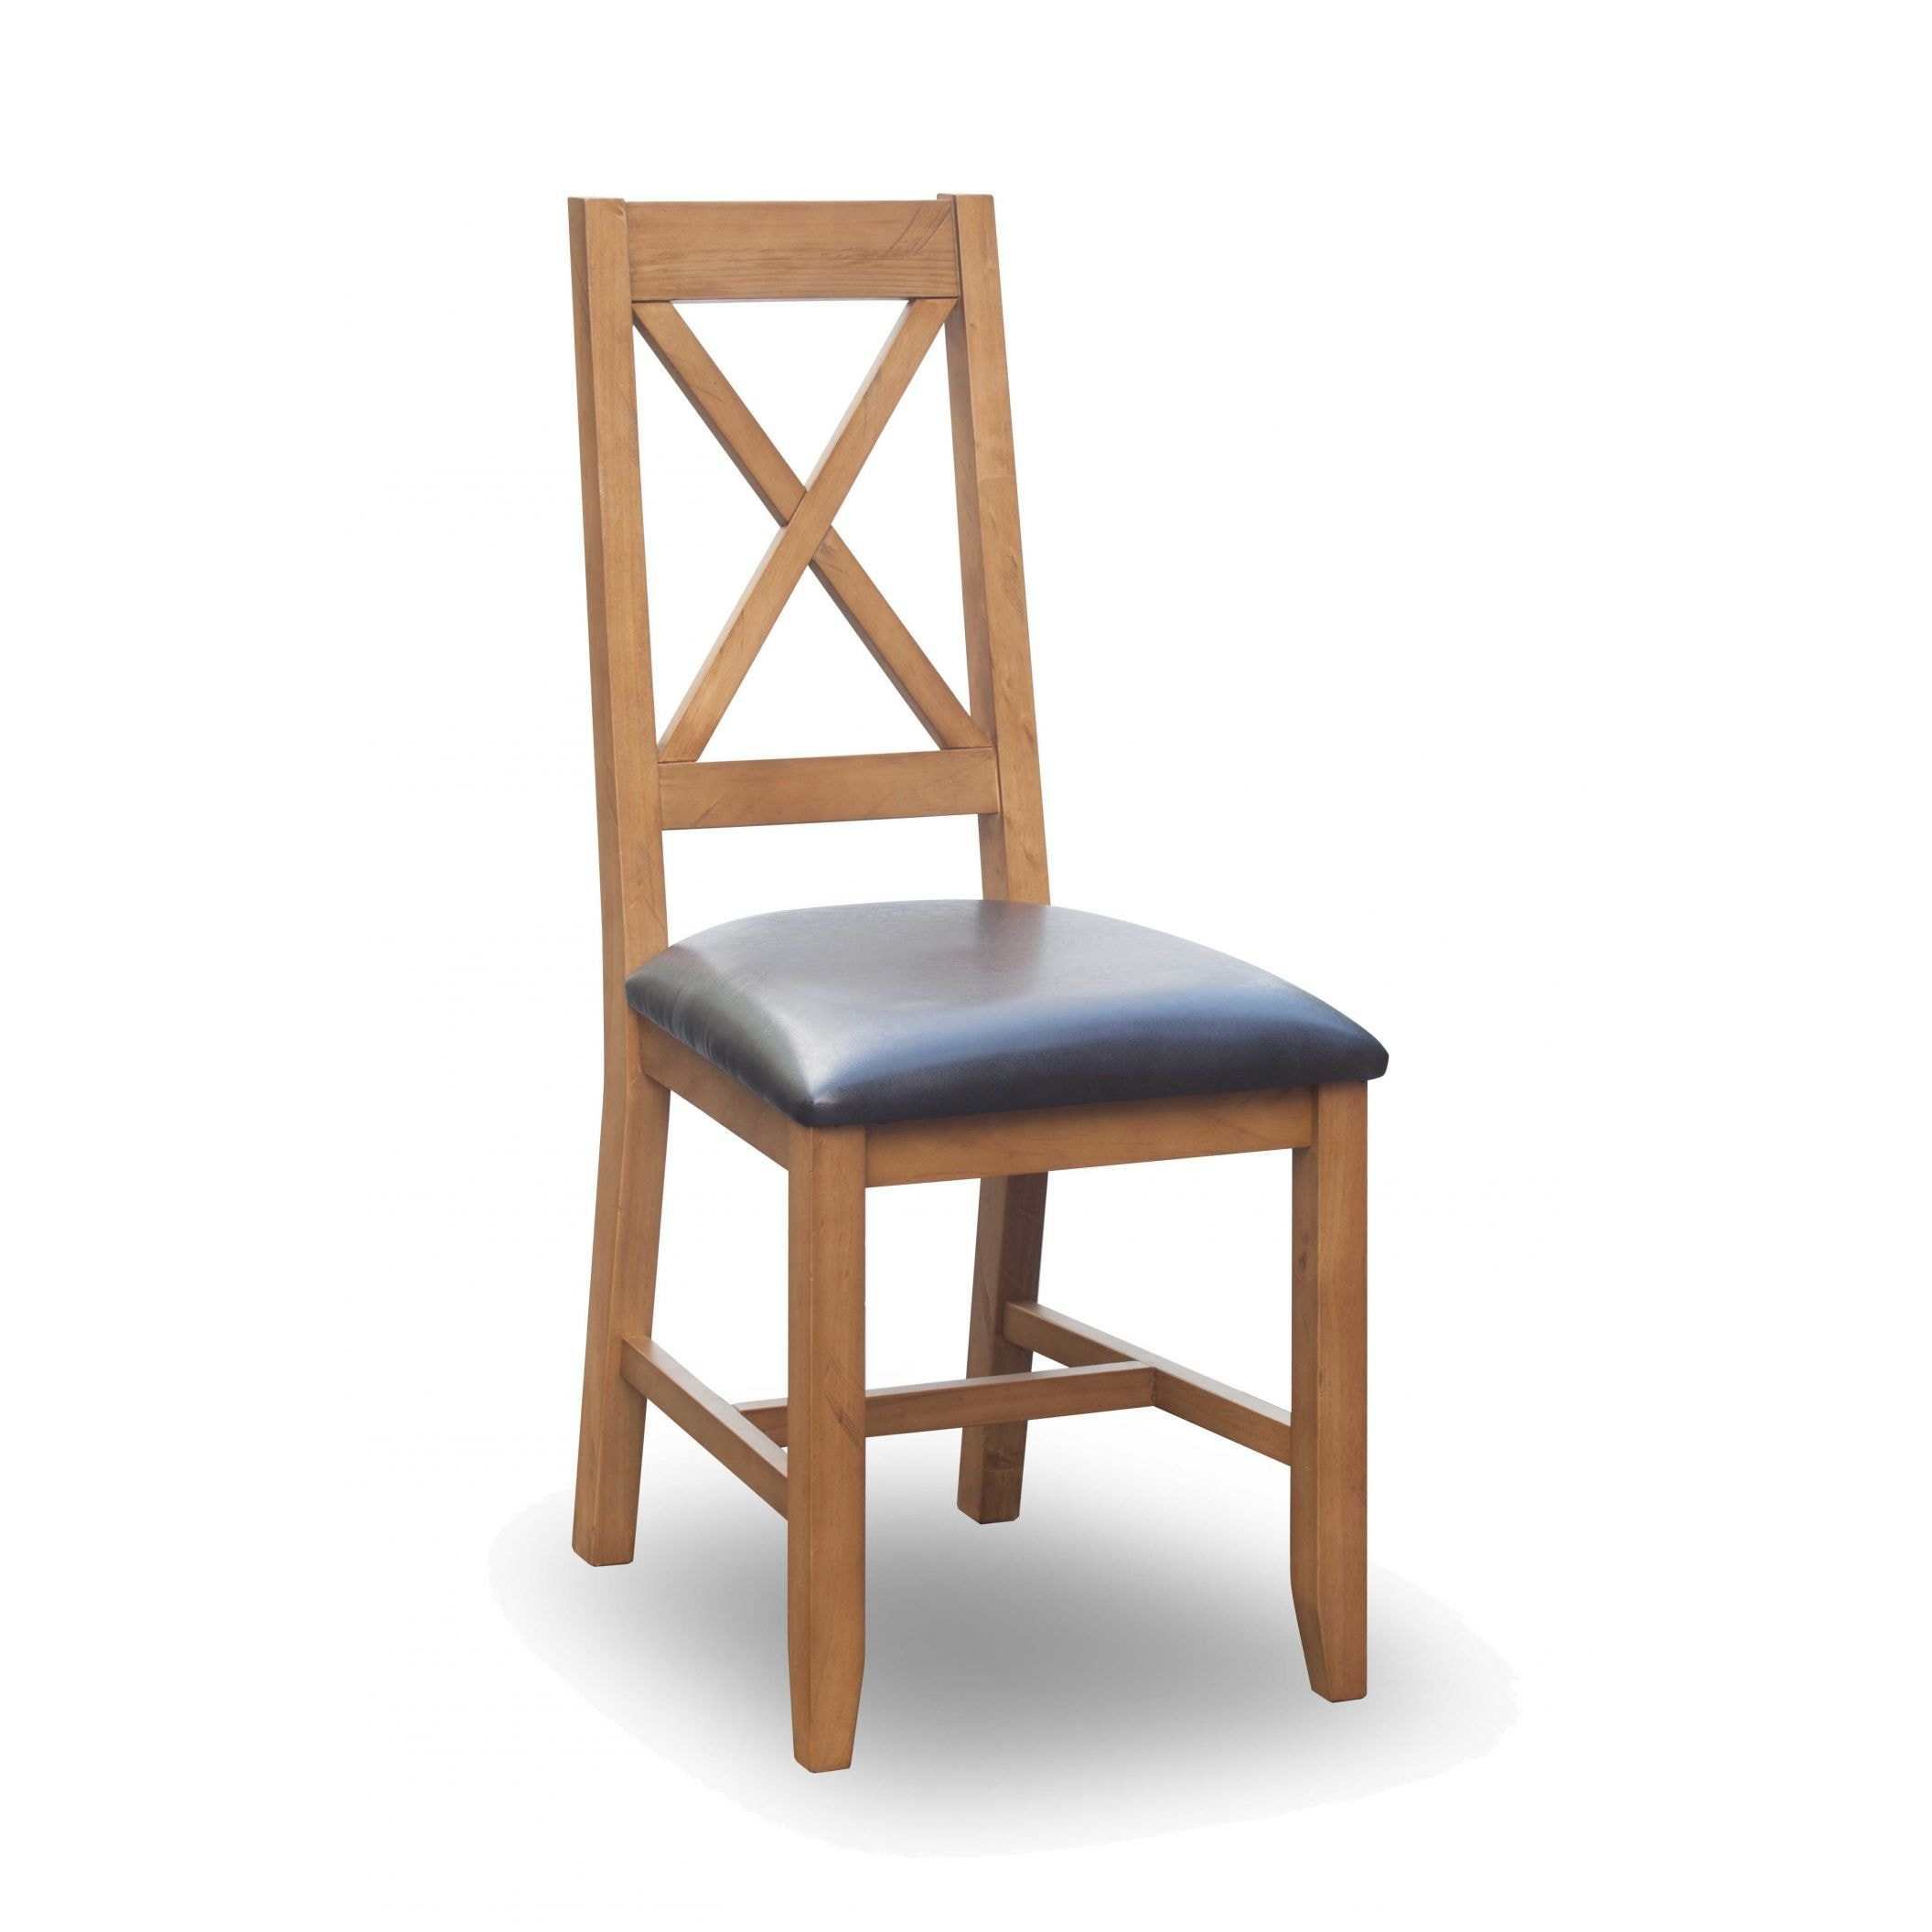 Boden pine dining chair modern furniture online now for Boden direct code